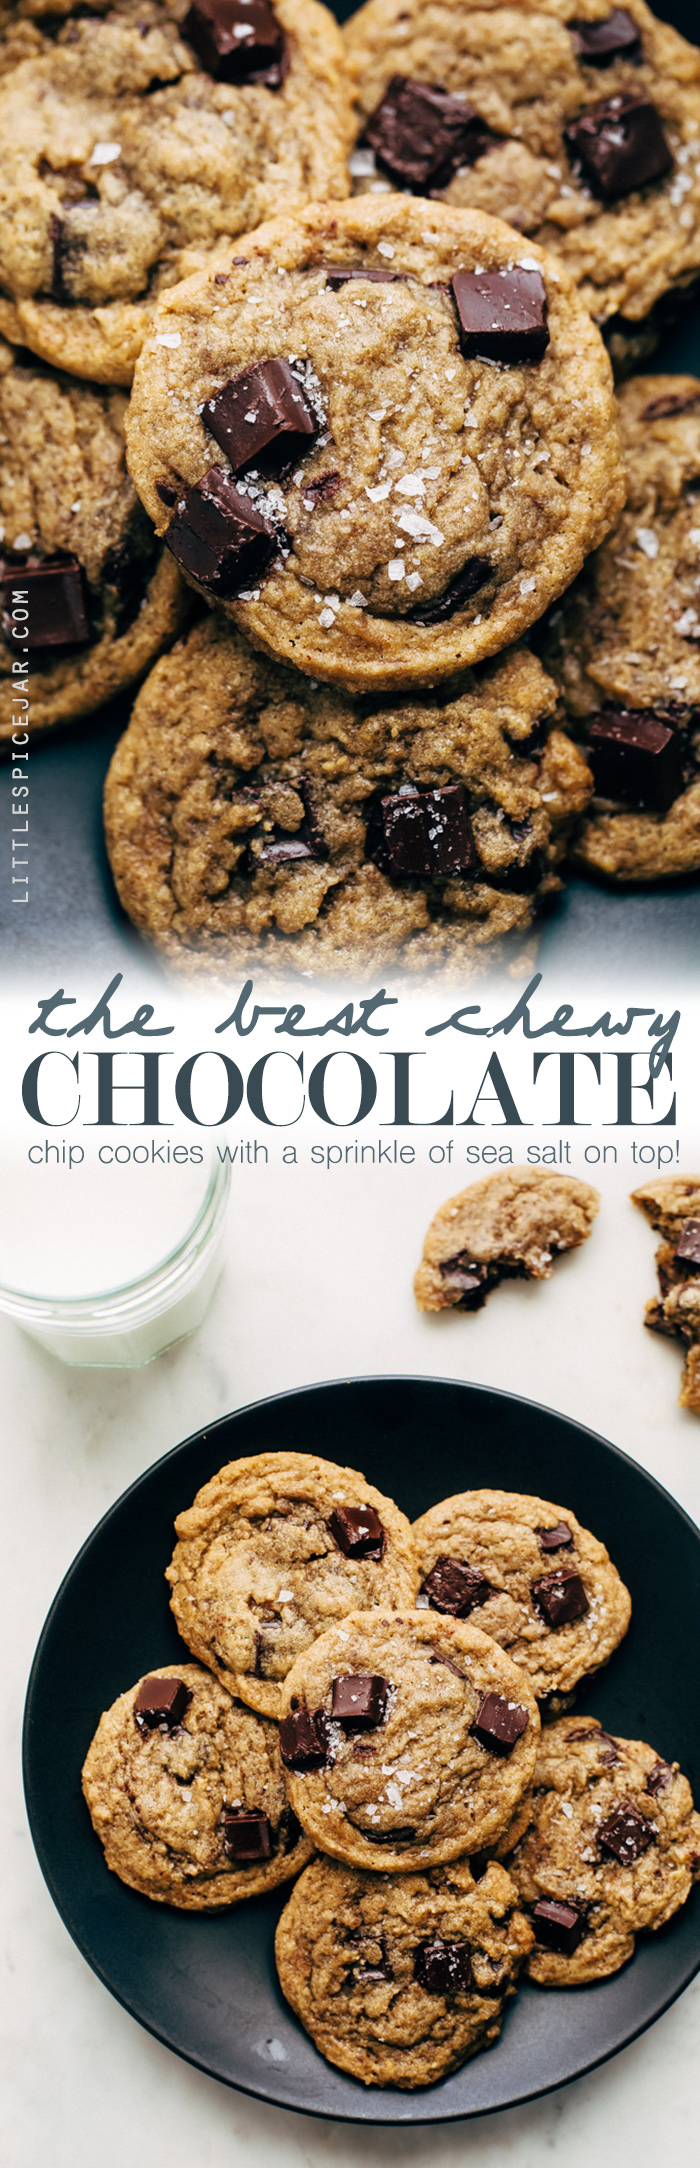 The BEST Chewy Chocolate Chip Cookies - this recipe uses bread flour to add tons of tender, soft and chewy goodness to these cookies! #chewychocolatechipcookies #chocolatechipcookies #cookies | Littlespicejar.com